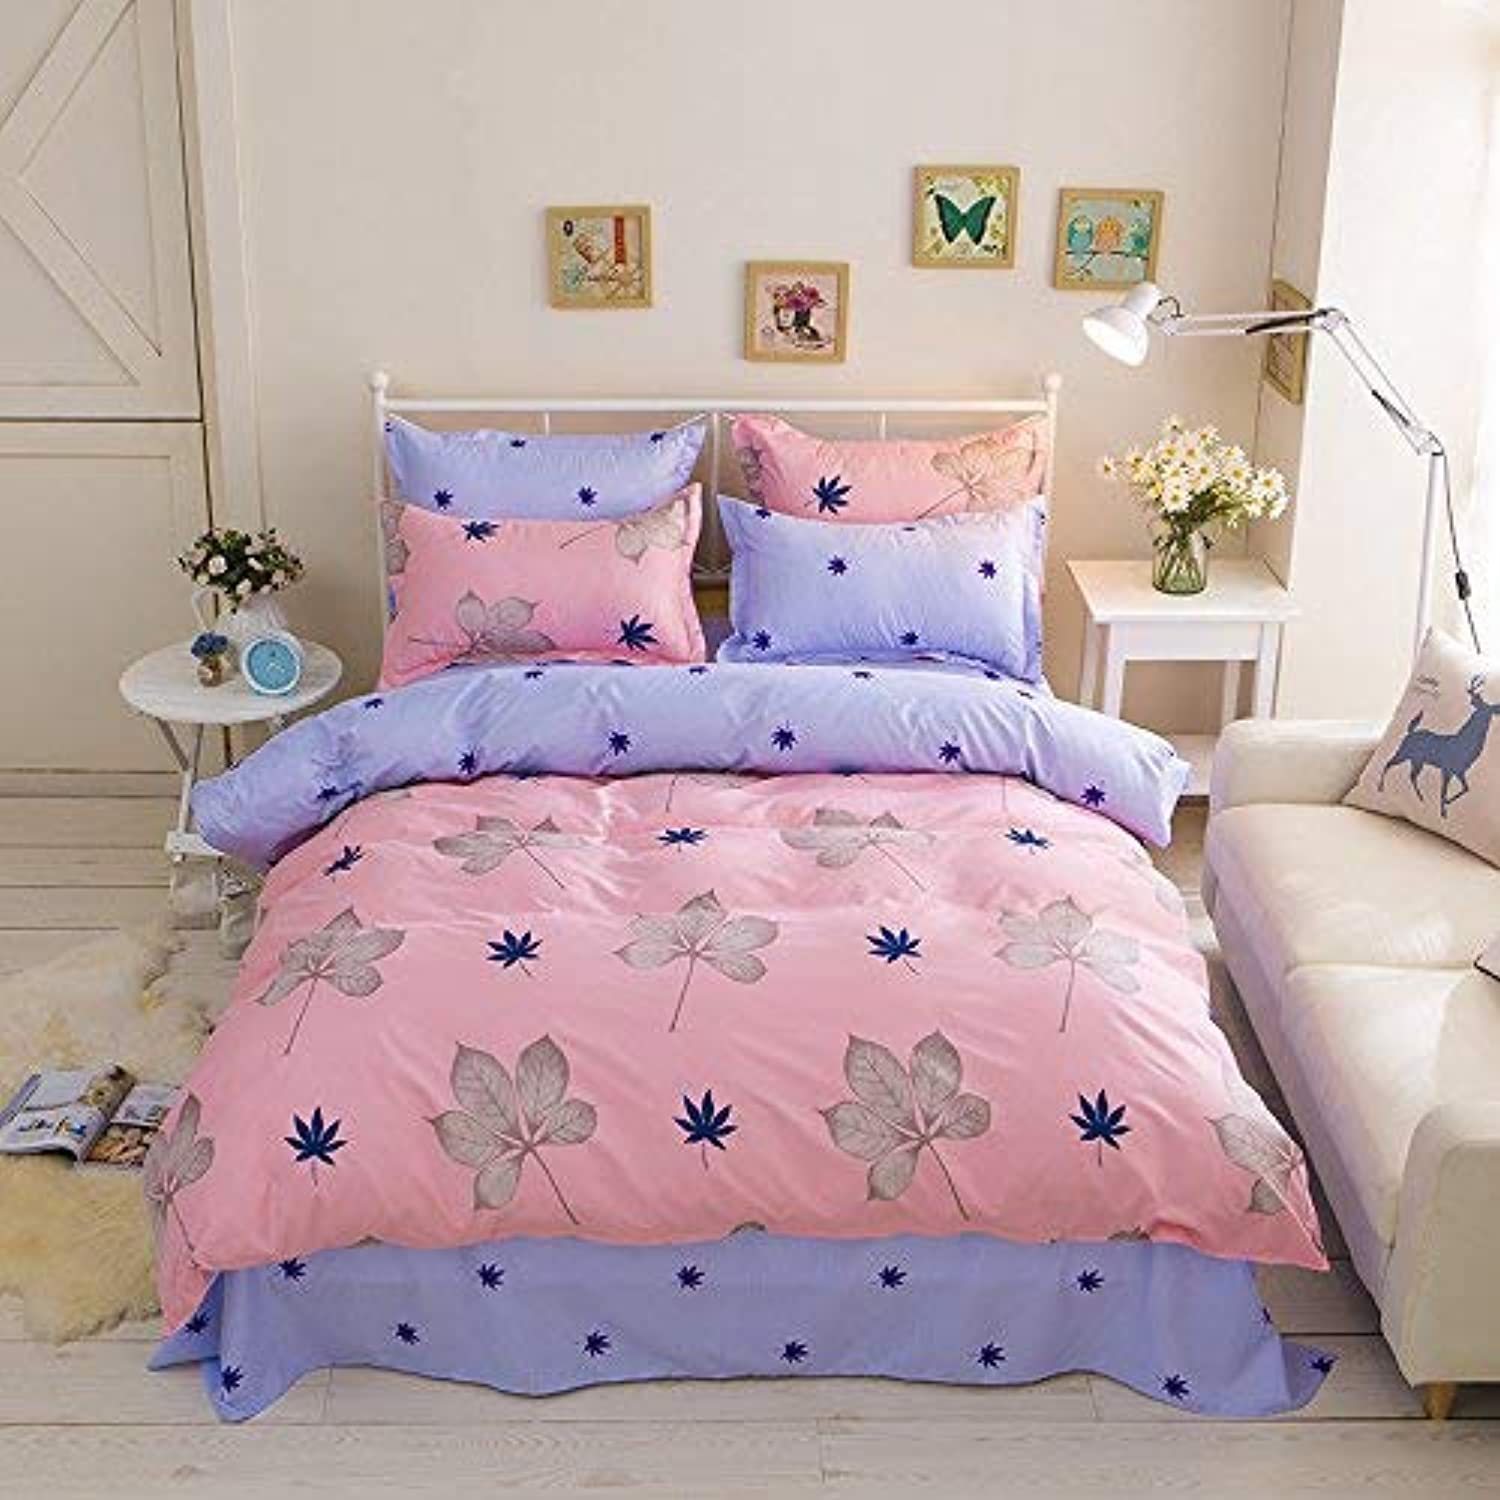 4pcs Beddingset Duvet Cover Set Without Comforter One Duvet Cover One Flatsheet Two Pillowcase KY Twin Full Queen Sweat Heart Design (Queen, Maple Leaf, Red)